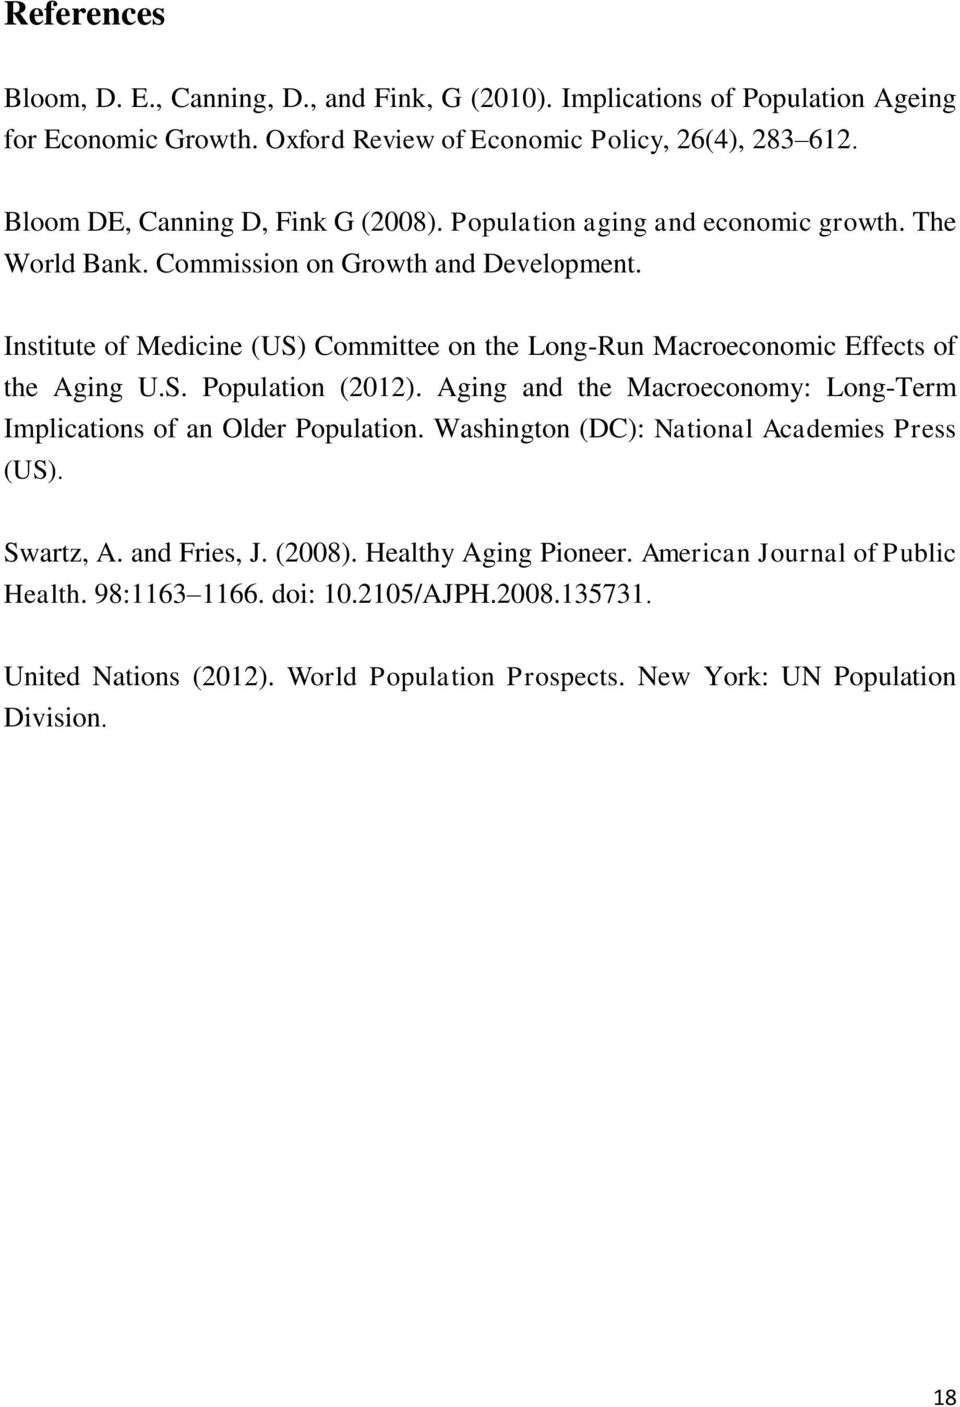 Institute of Medicine (US) Committee on the Long-Run Macroeconomic Effects of the Aging U.S. Population (2012). Aging and the Macroeconomy: Long-Term Implications of an Older Population.